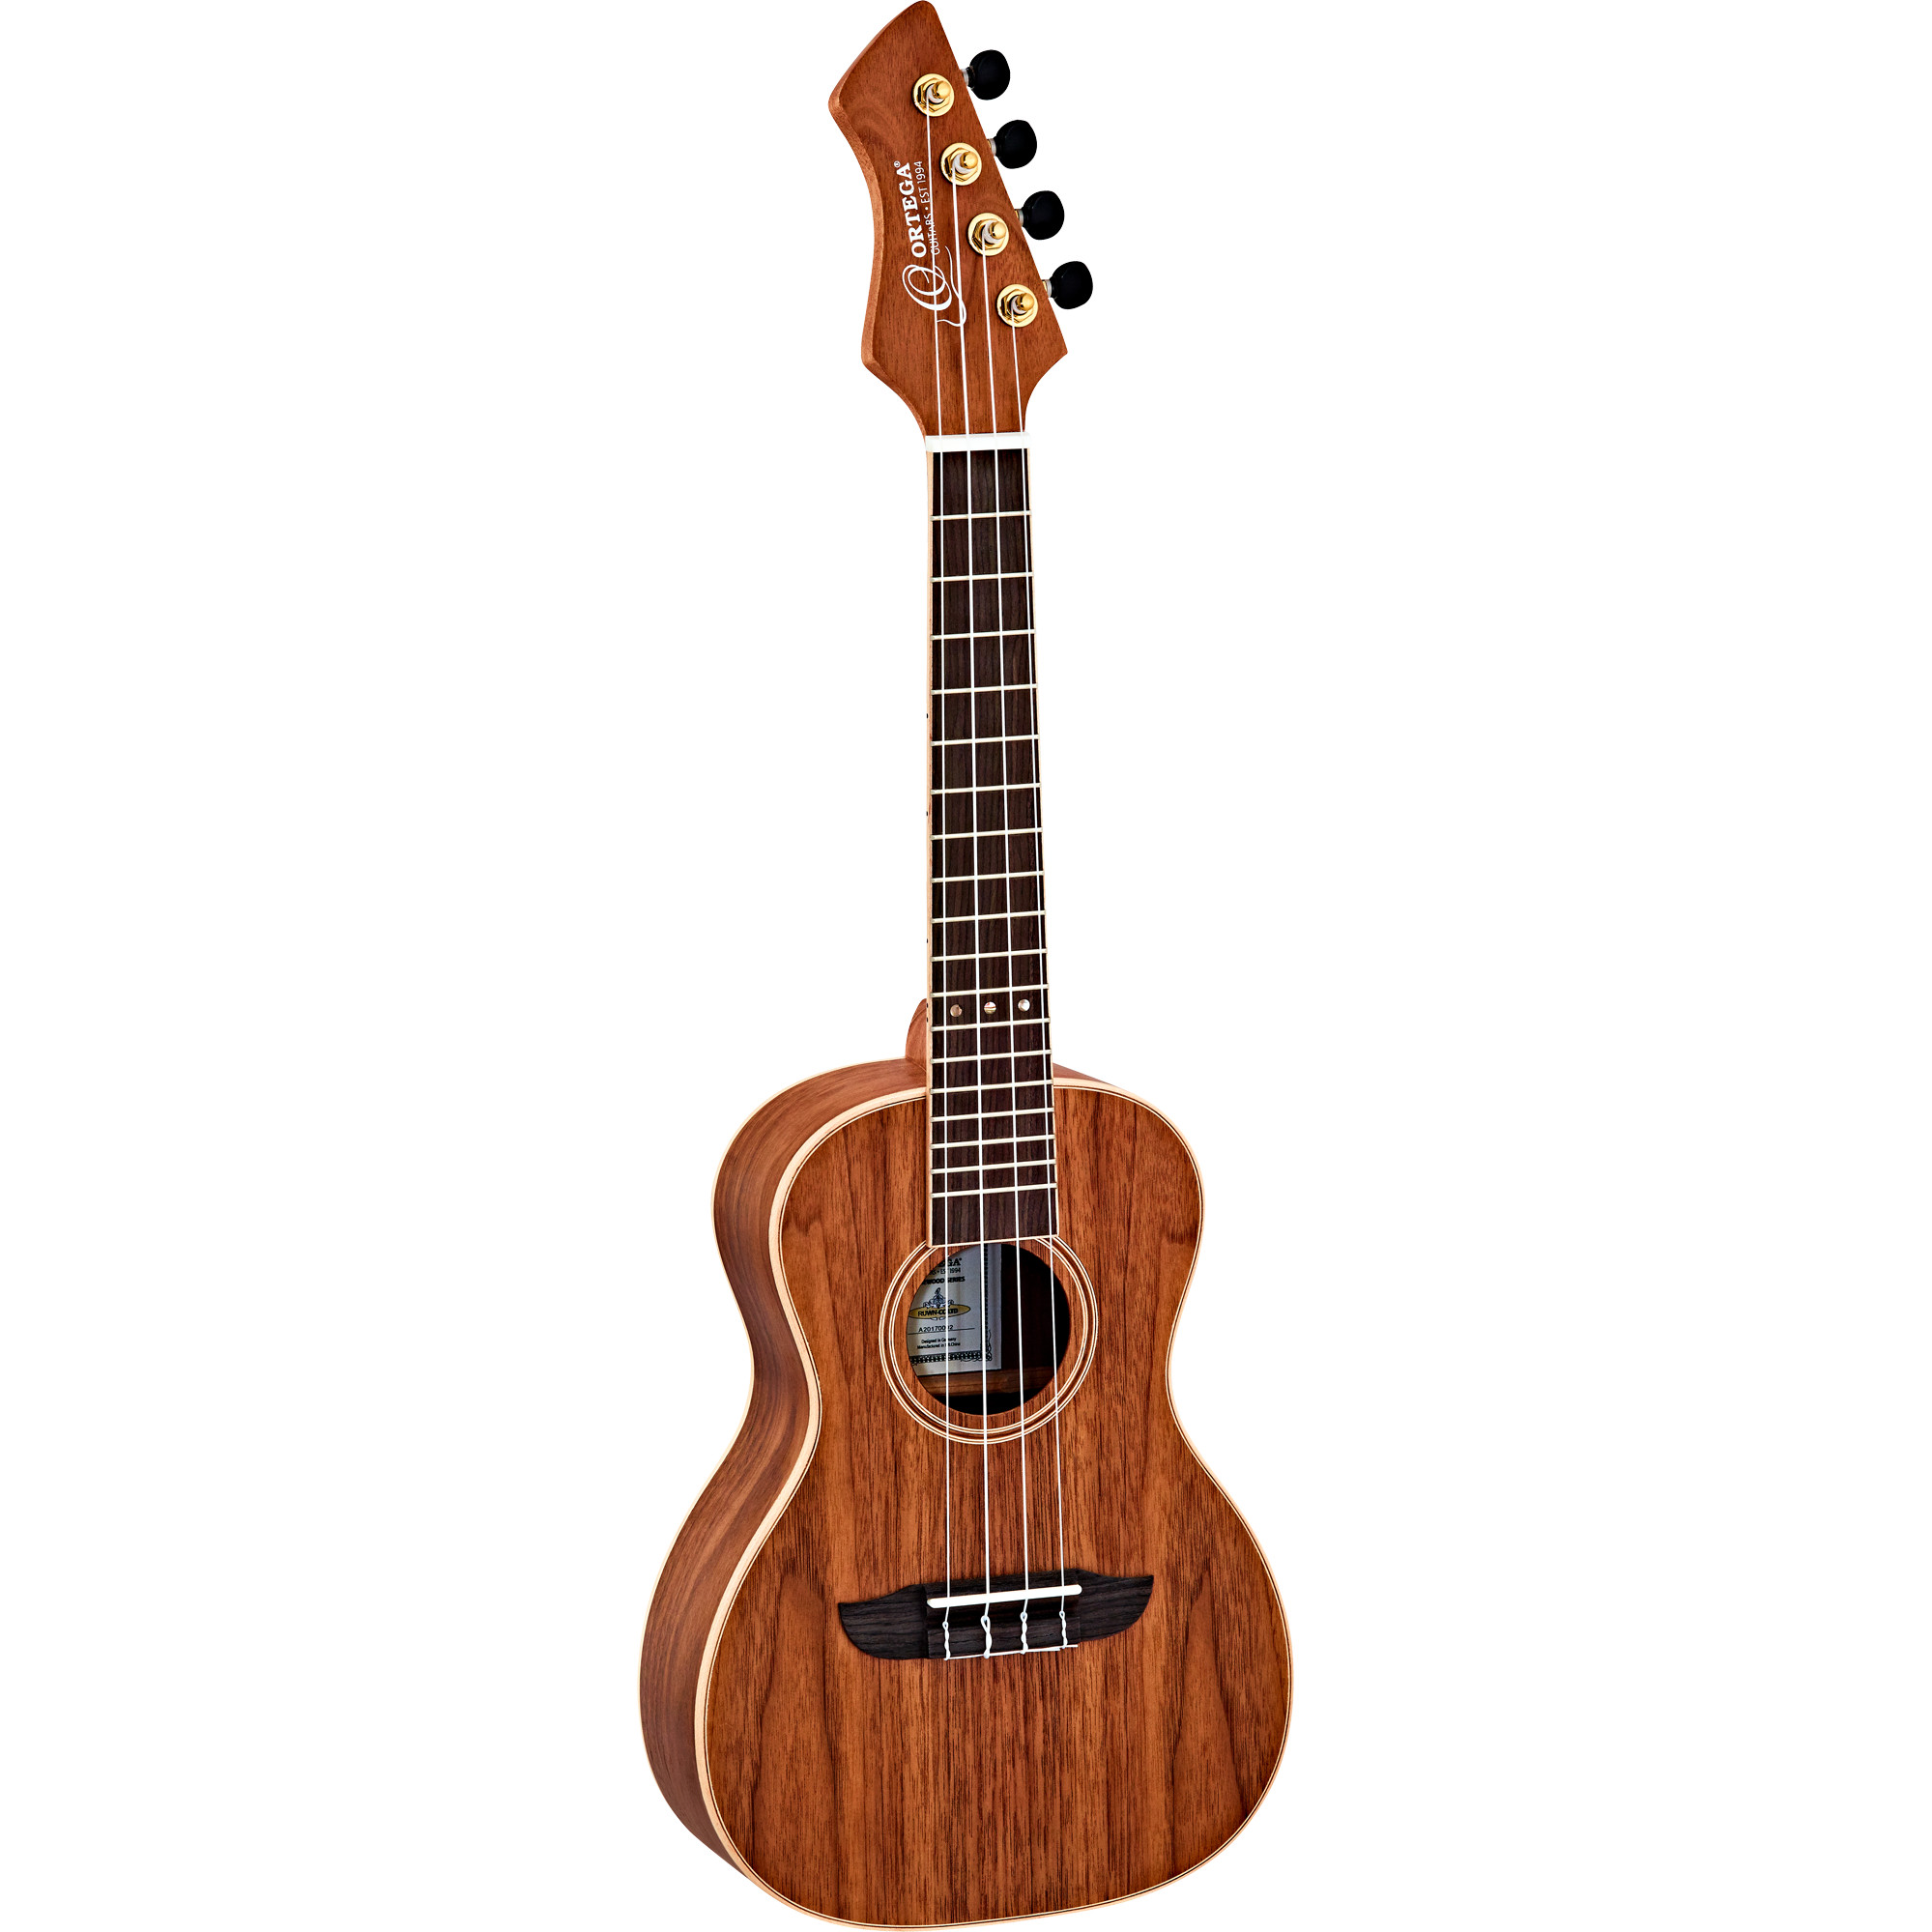 Ortega Horizon Series RUWN concert ukulele with gig bag